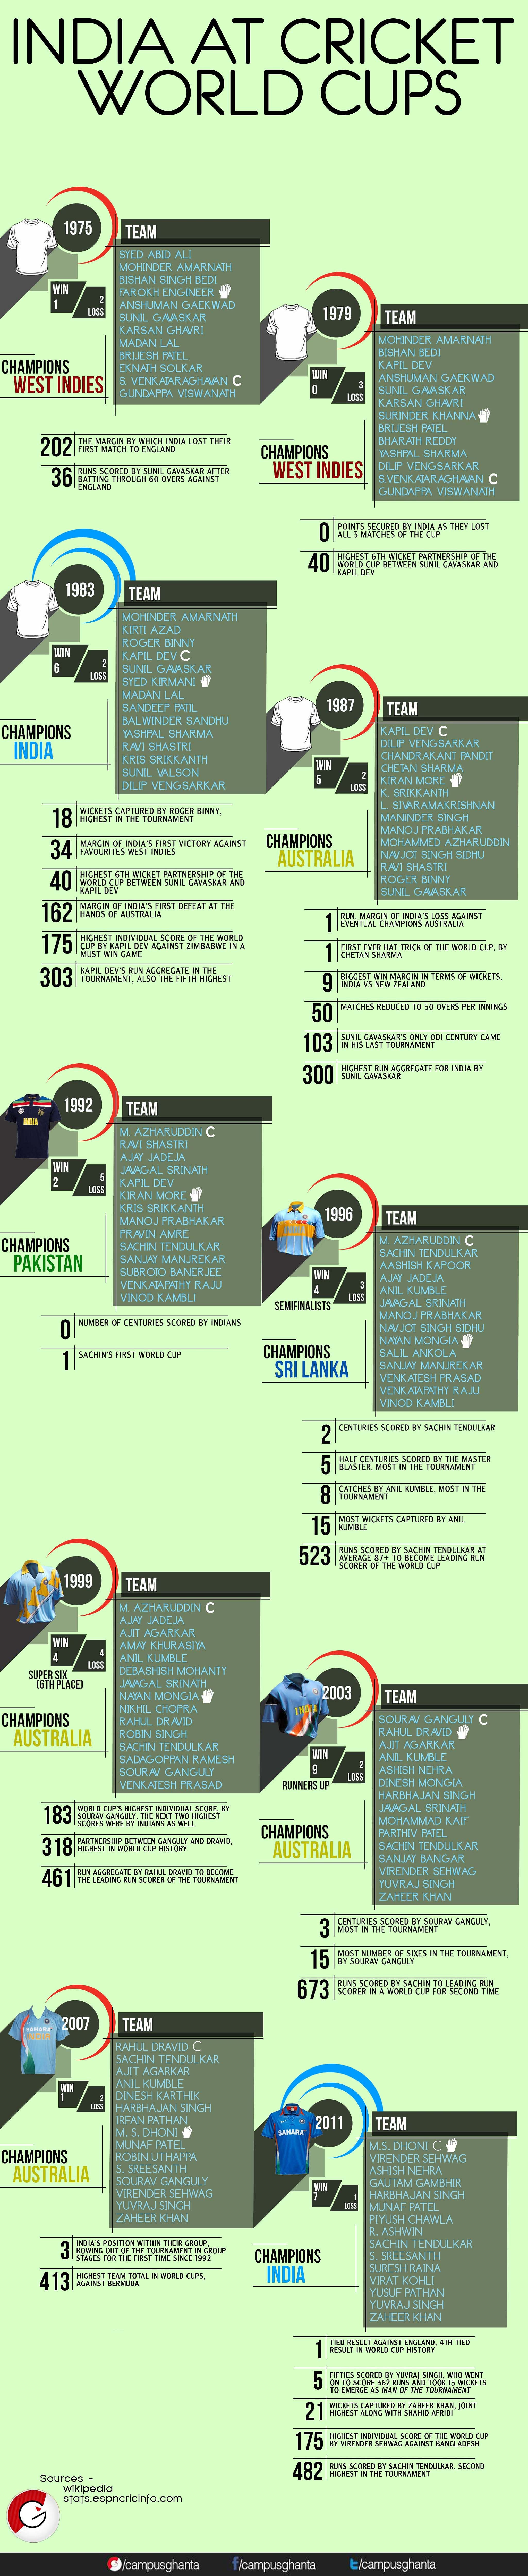 Infographic: India at Cricket World Cups